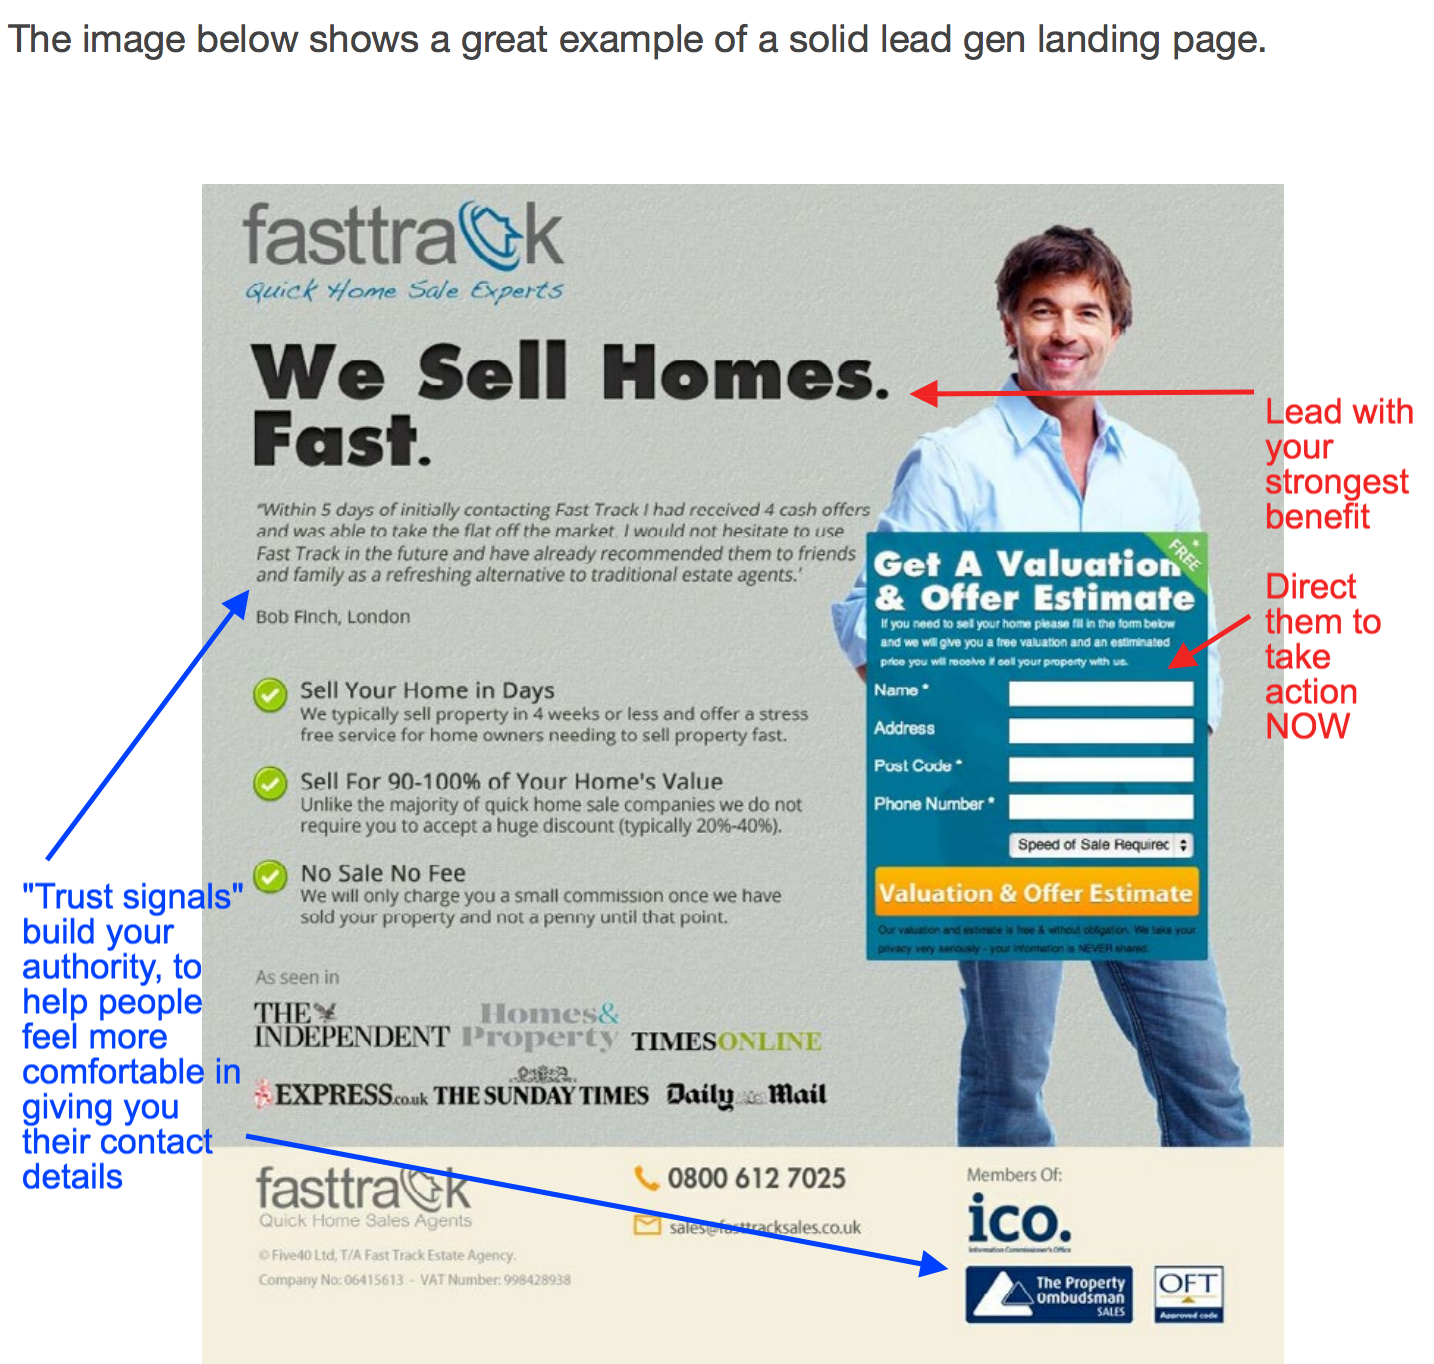 An example of a good landing page for lead gen